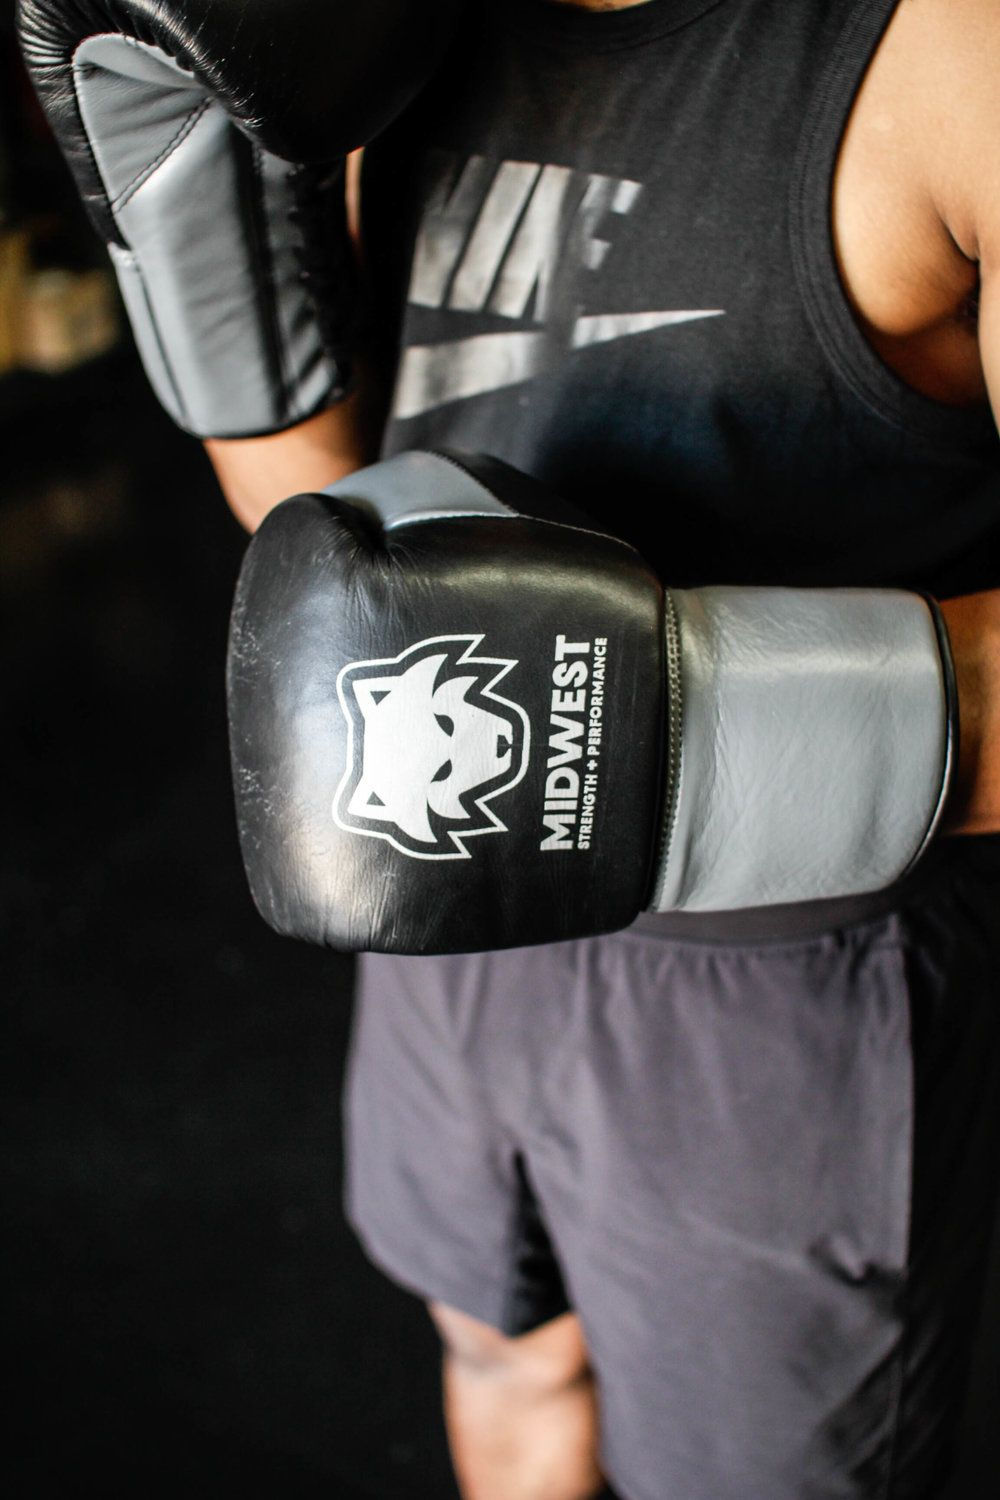 Midwest strength performance kettlebell routines tire